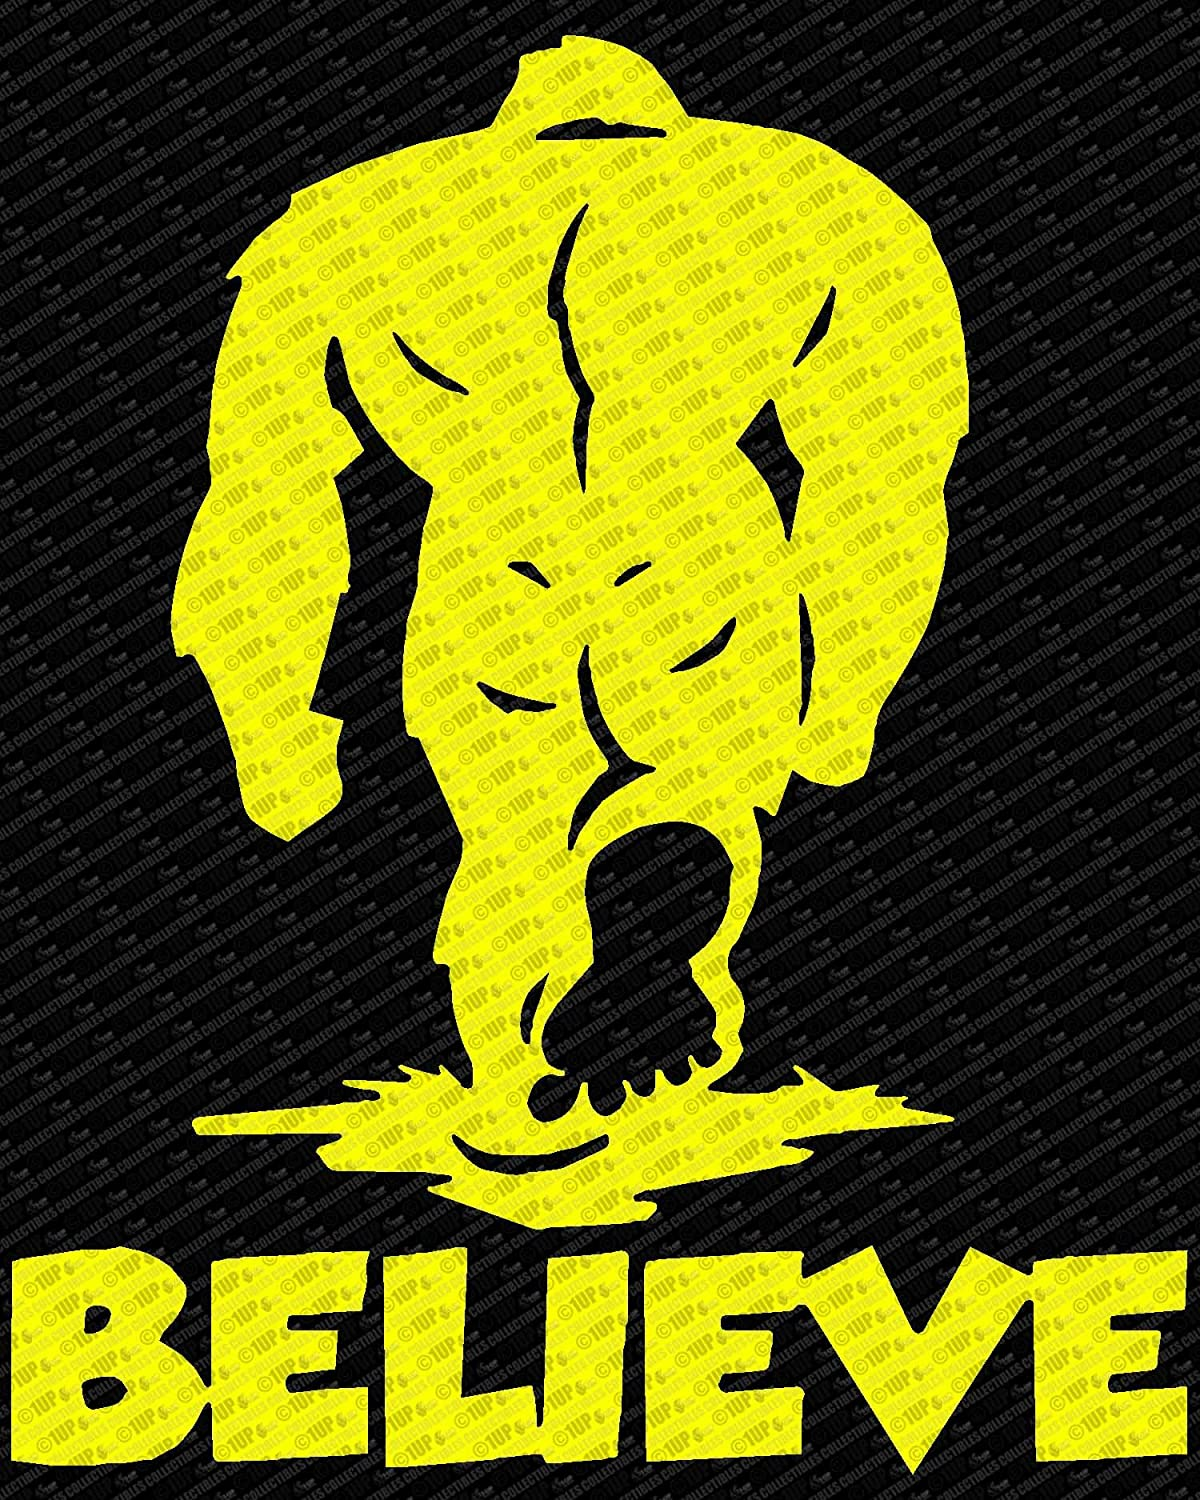 Amazon.com: Bigfoot Believe - Sasquatch ver 1 Logo Die Cut Vinyl Decal Sticker (10